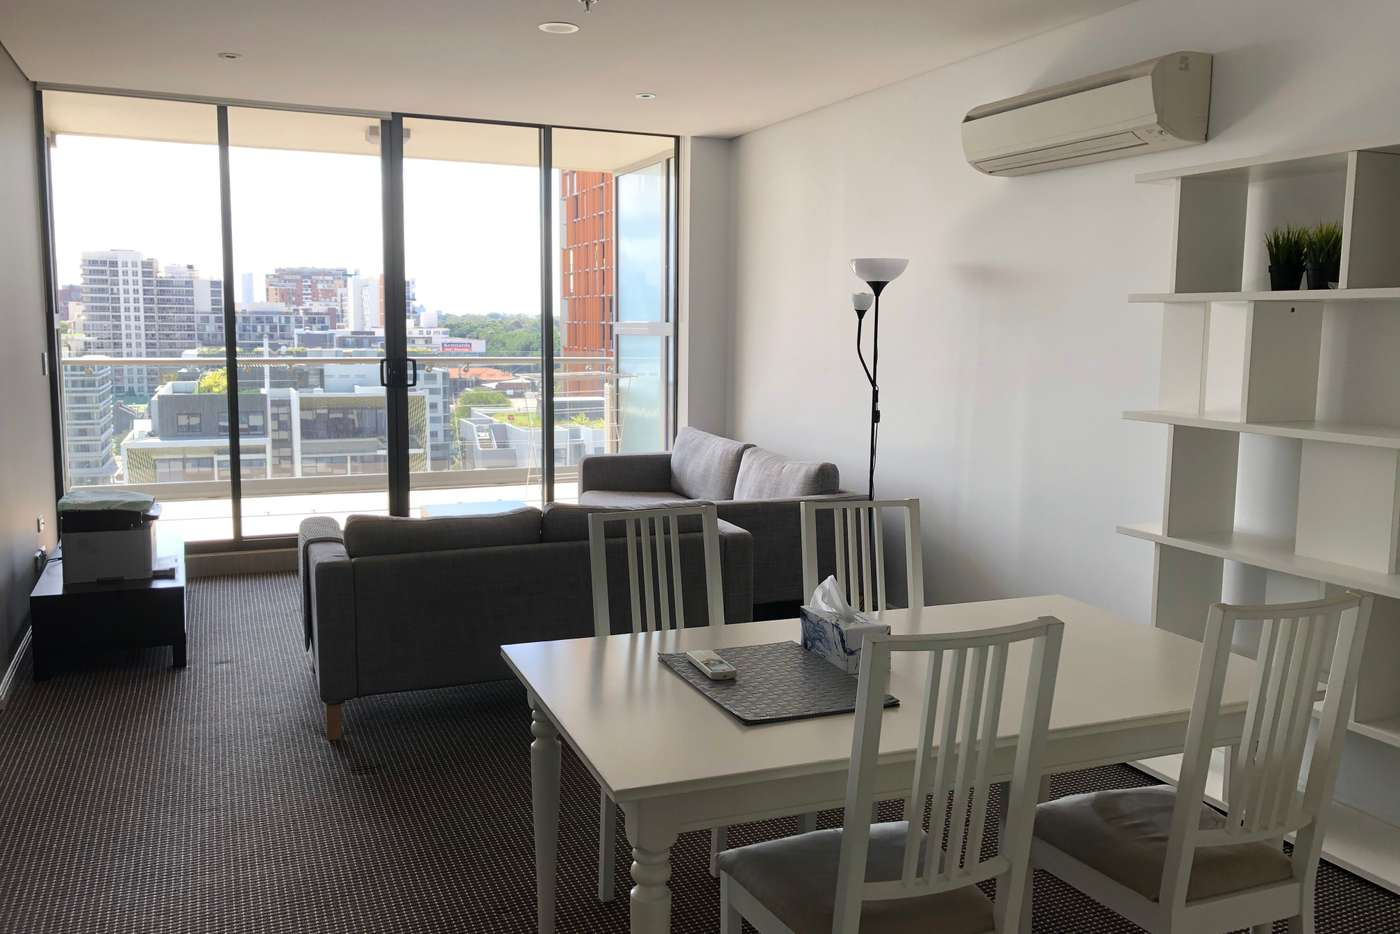 Main view of Homely apartment listing, 1104/20 Gadigal Avenue, Zetland NSW 2017